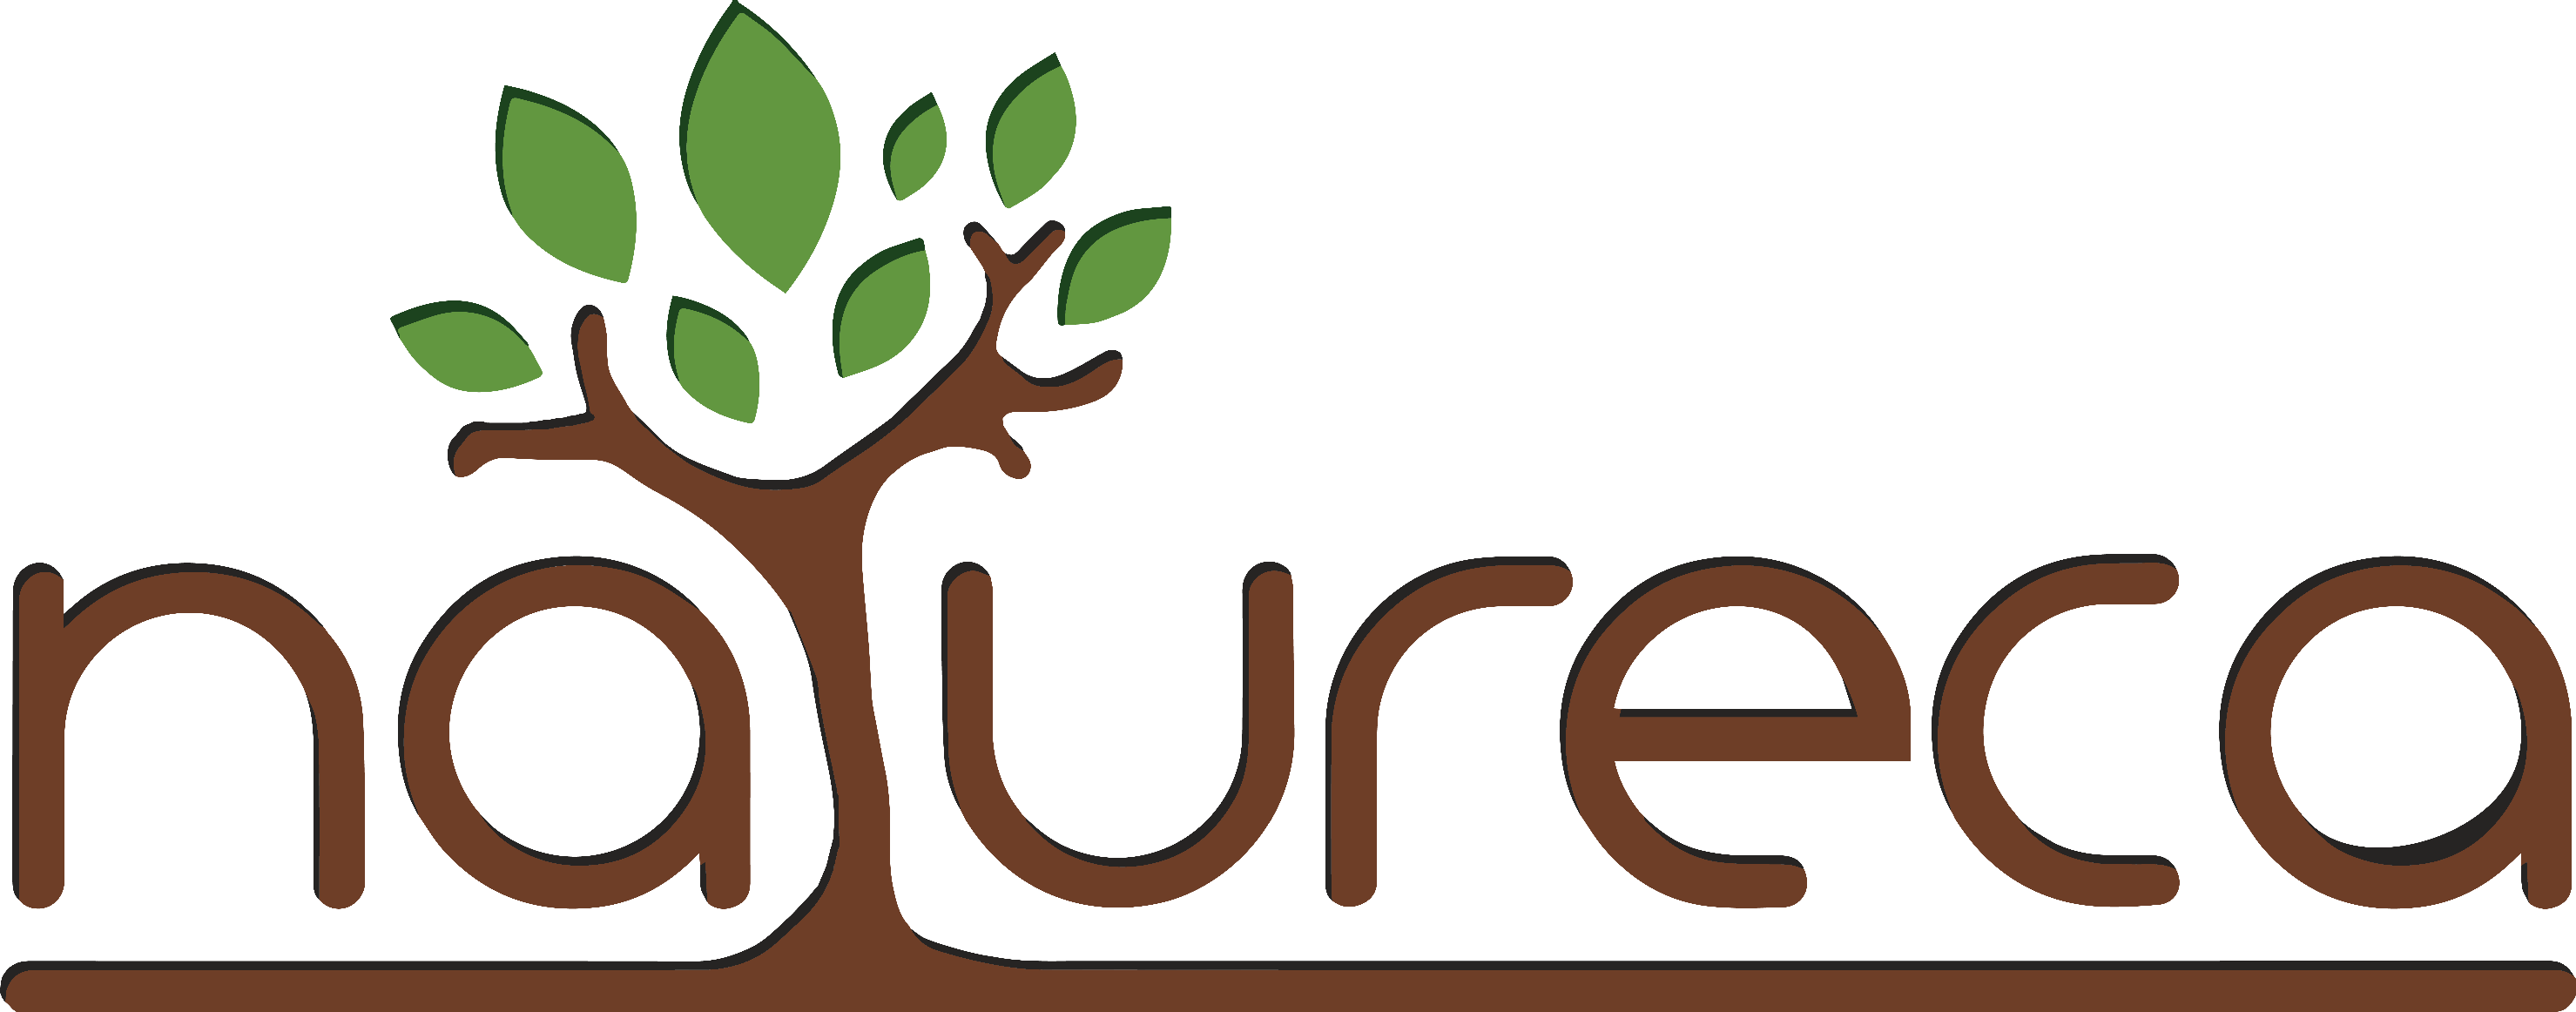 final_logo_natureca.png